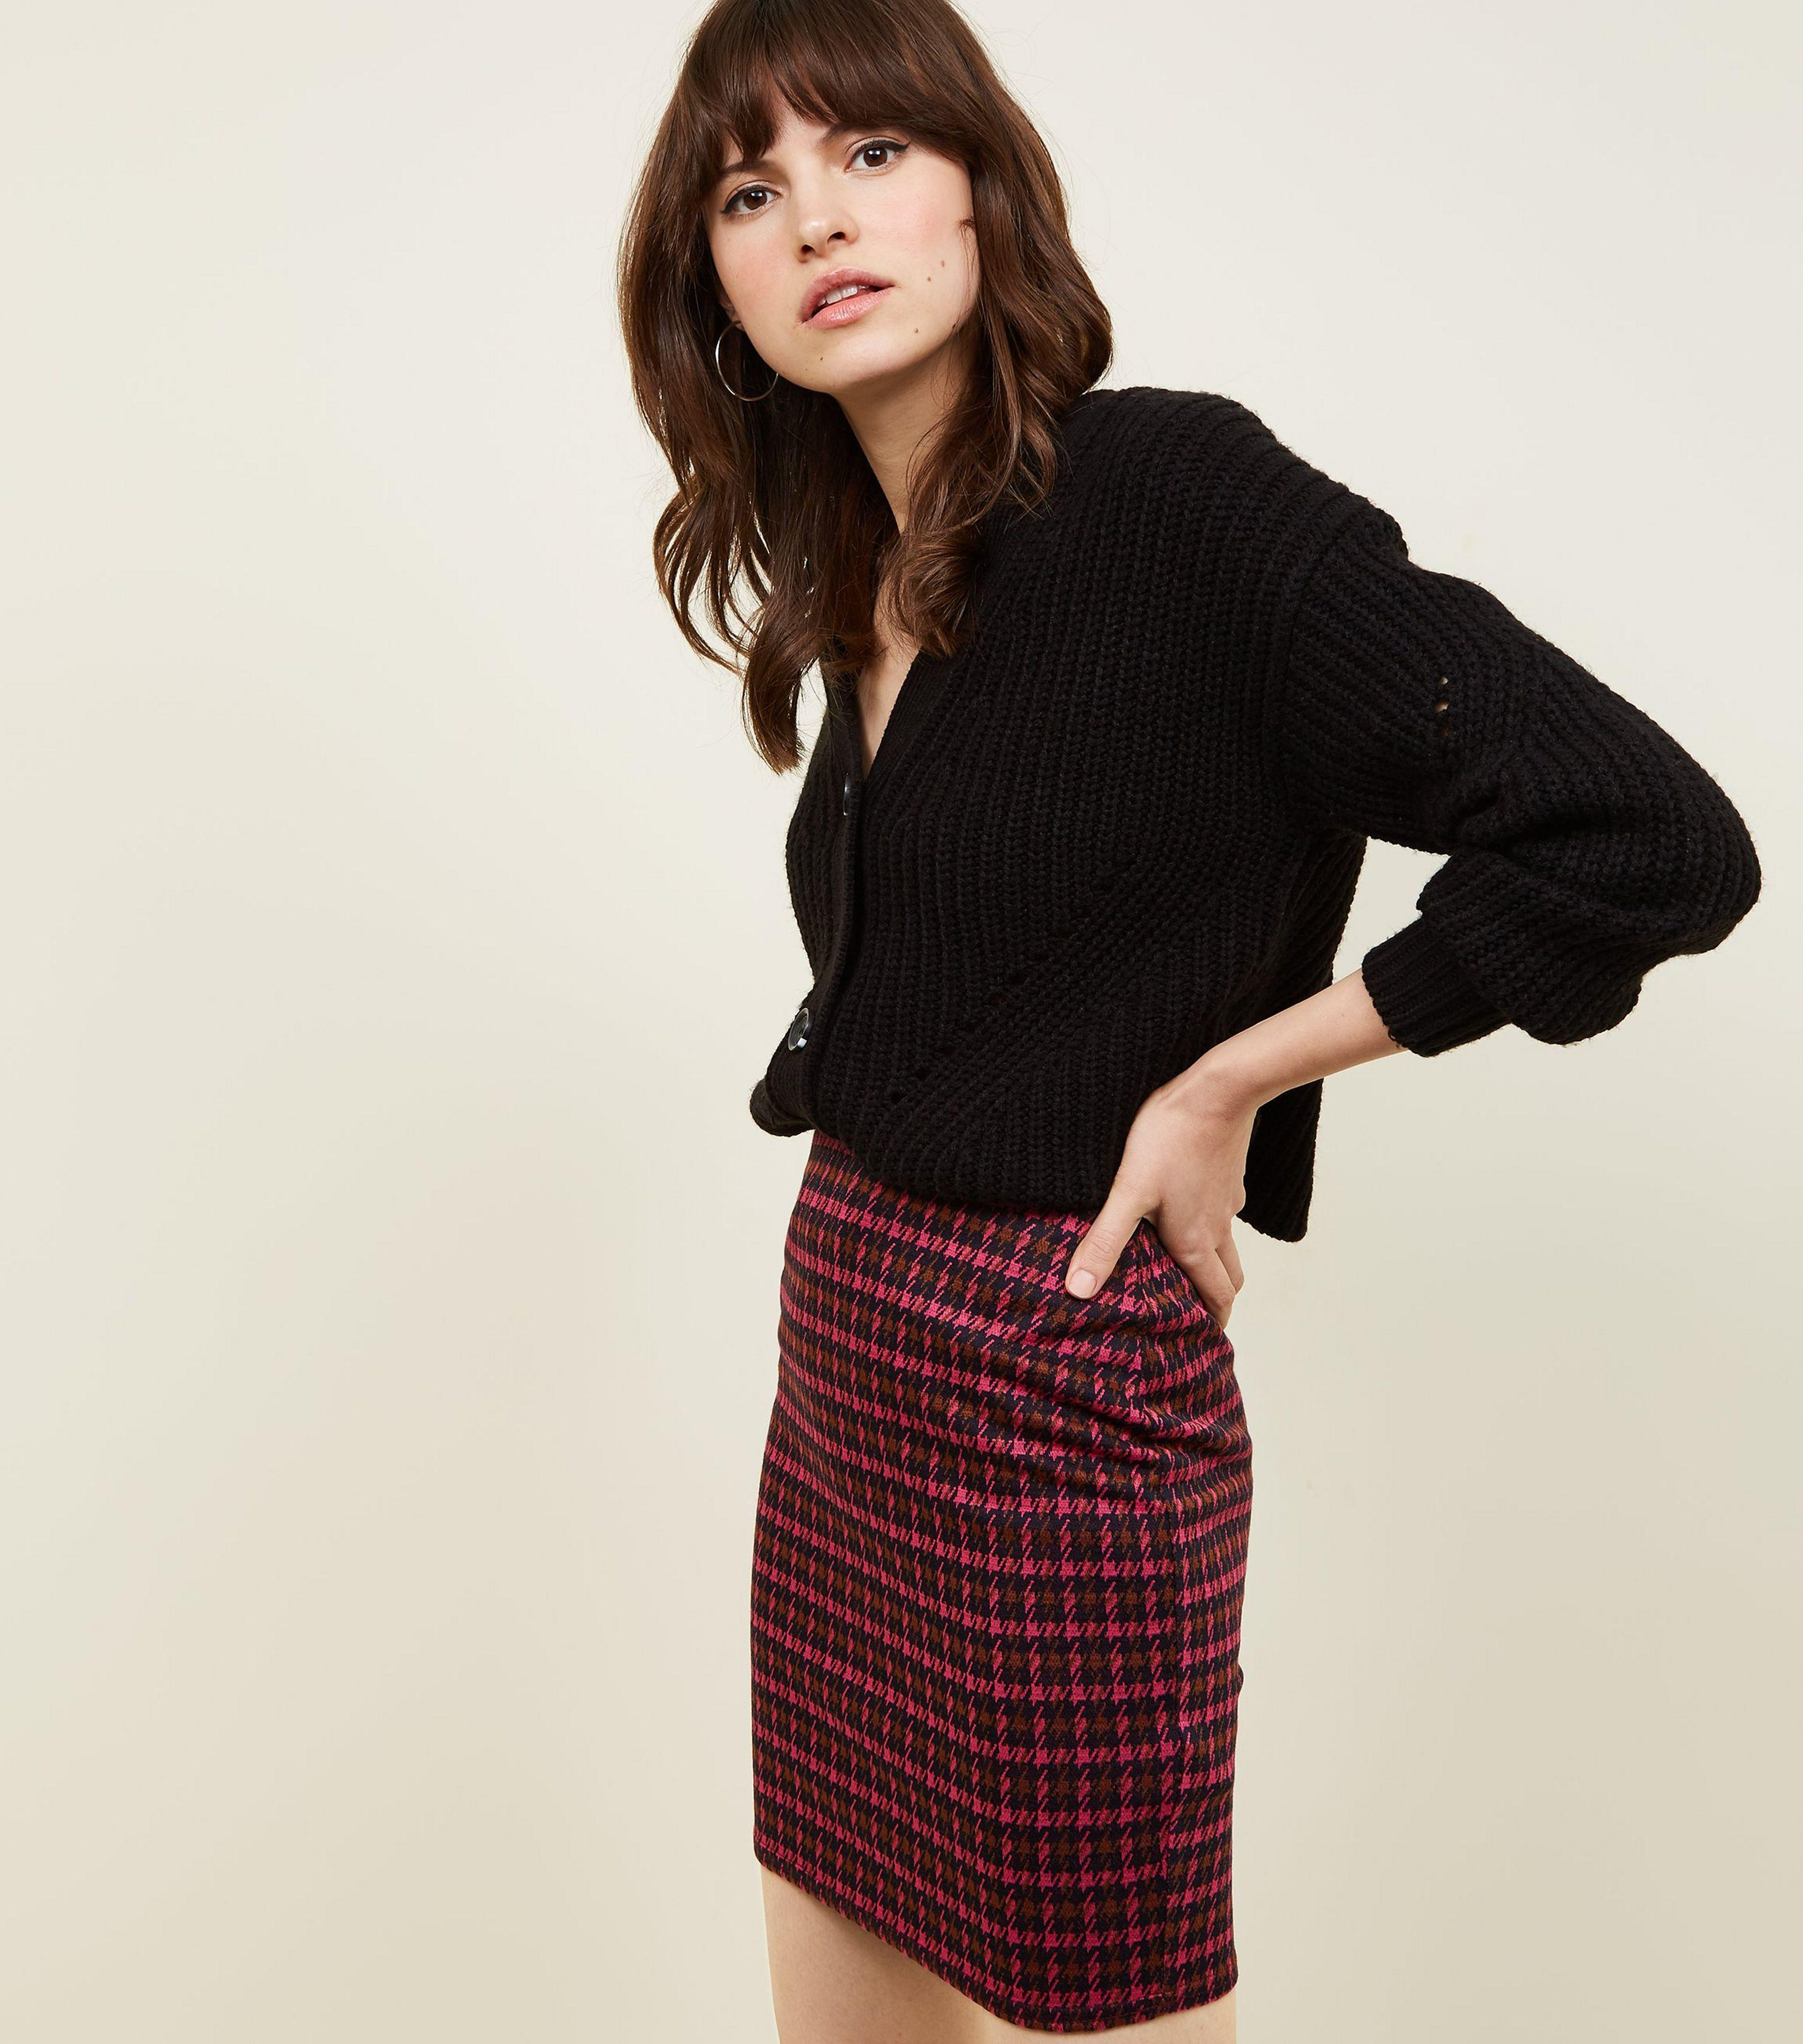 7094448e14 New Look Bright Pink Houndstooth Check Tube Skirt in Pink - Lyst